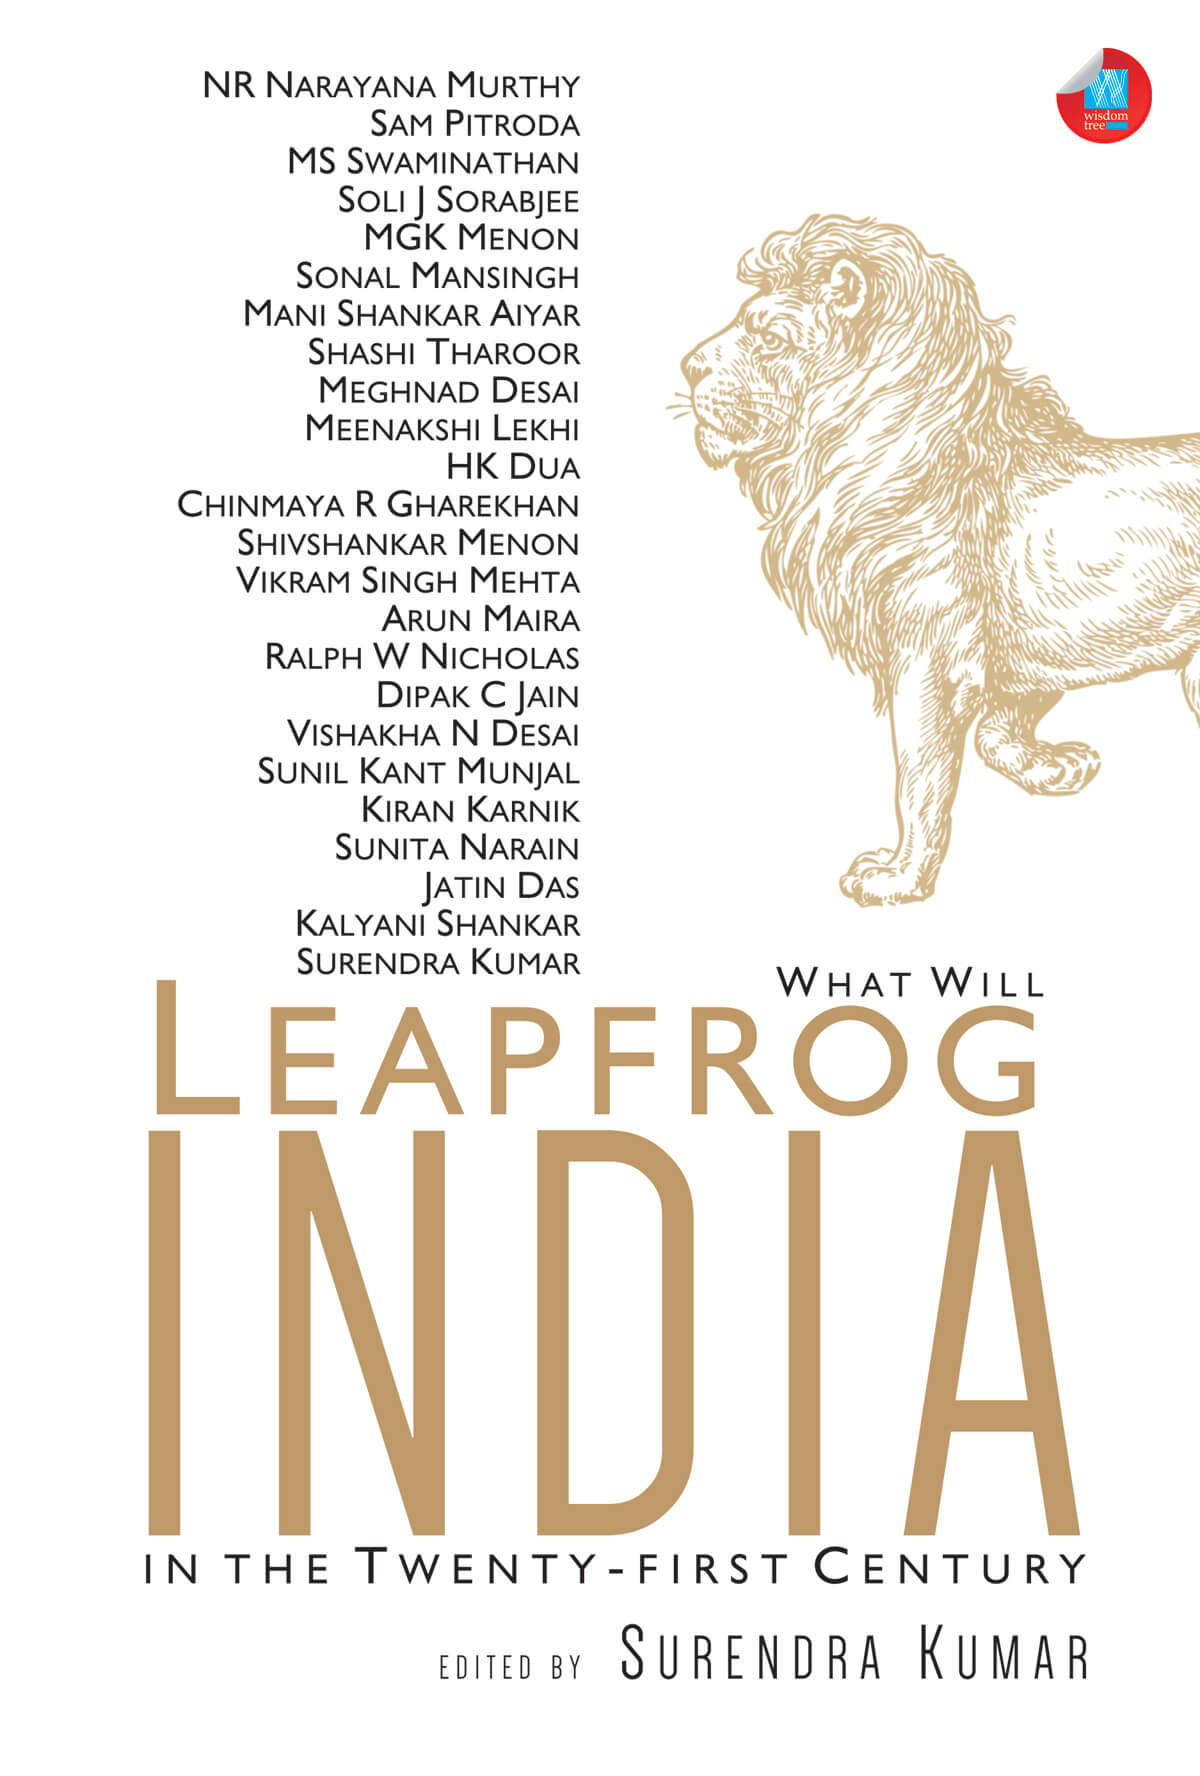 What Will Leapfrog India in the Twenty-first Century